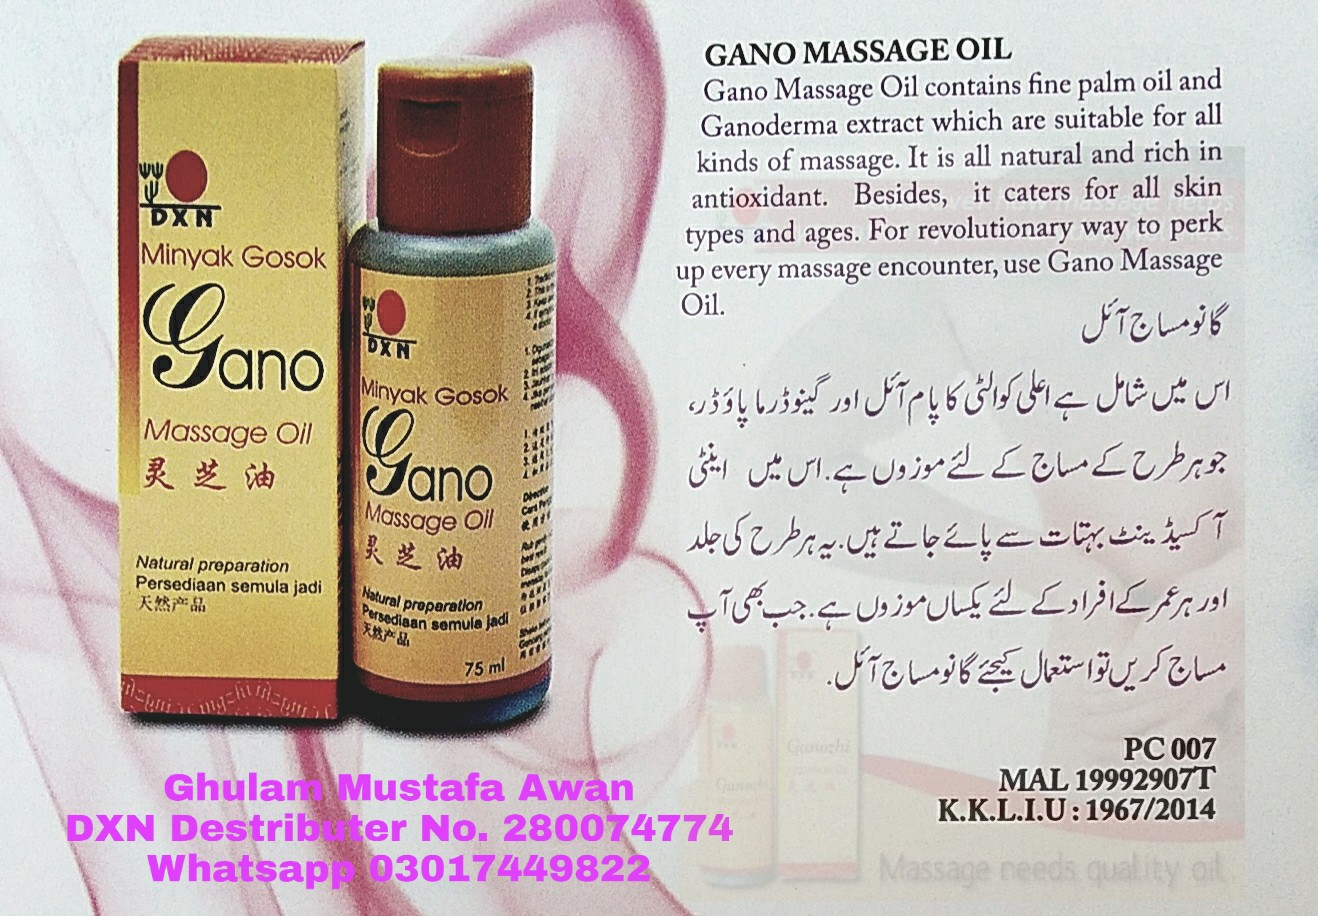 Dxn Products Sale And Marketing With Bsiness Multan Pakistan Dxn Products Urdu